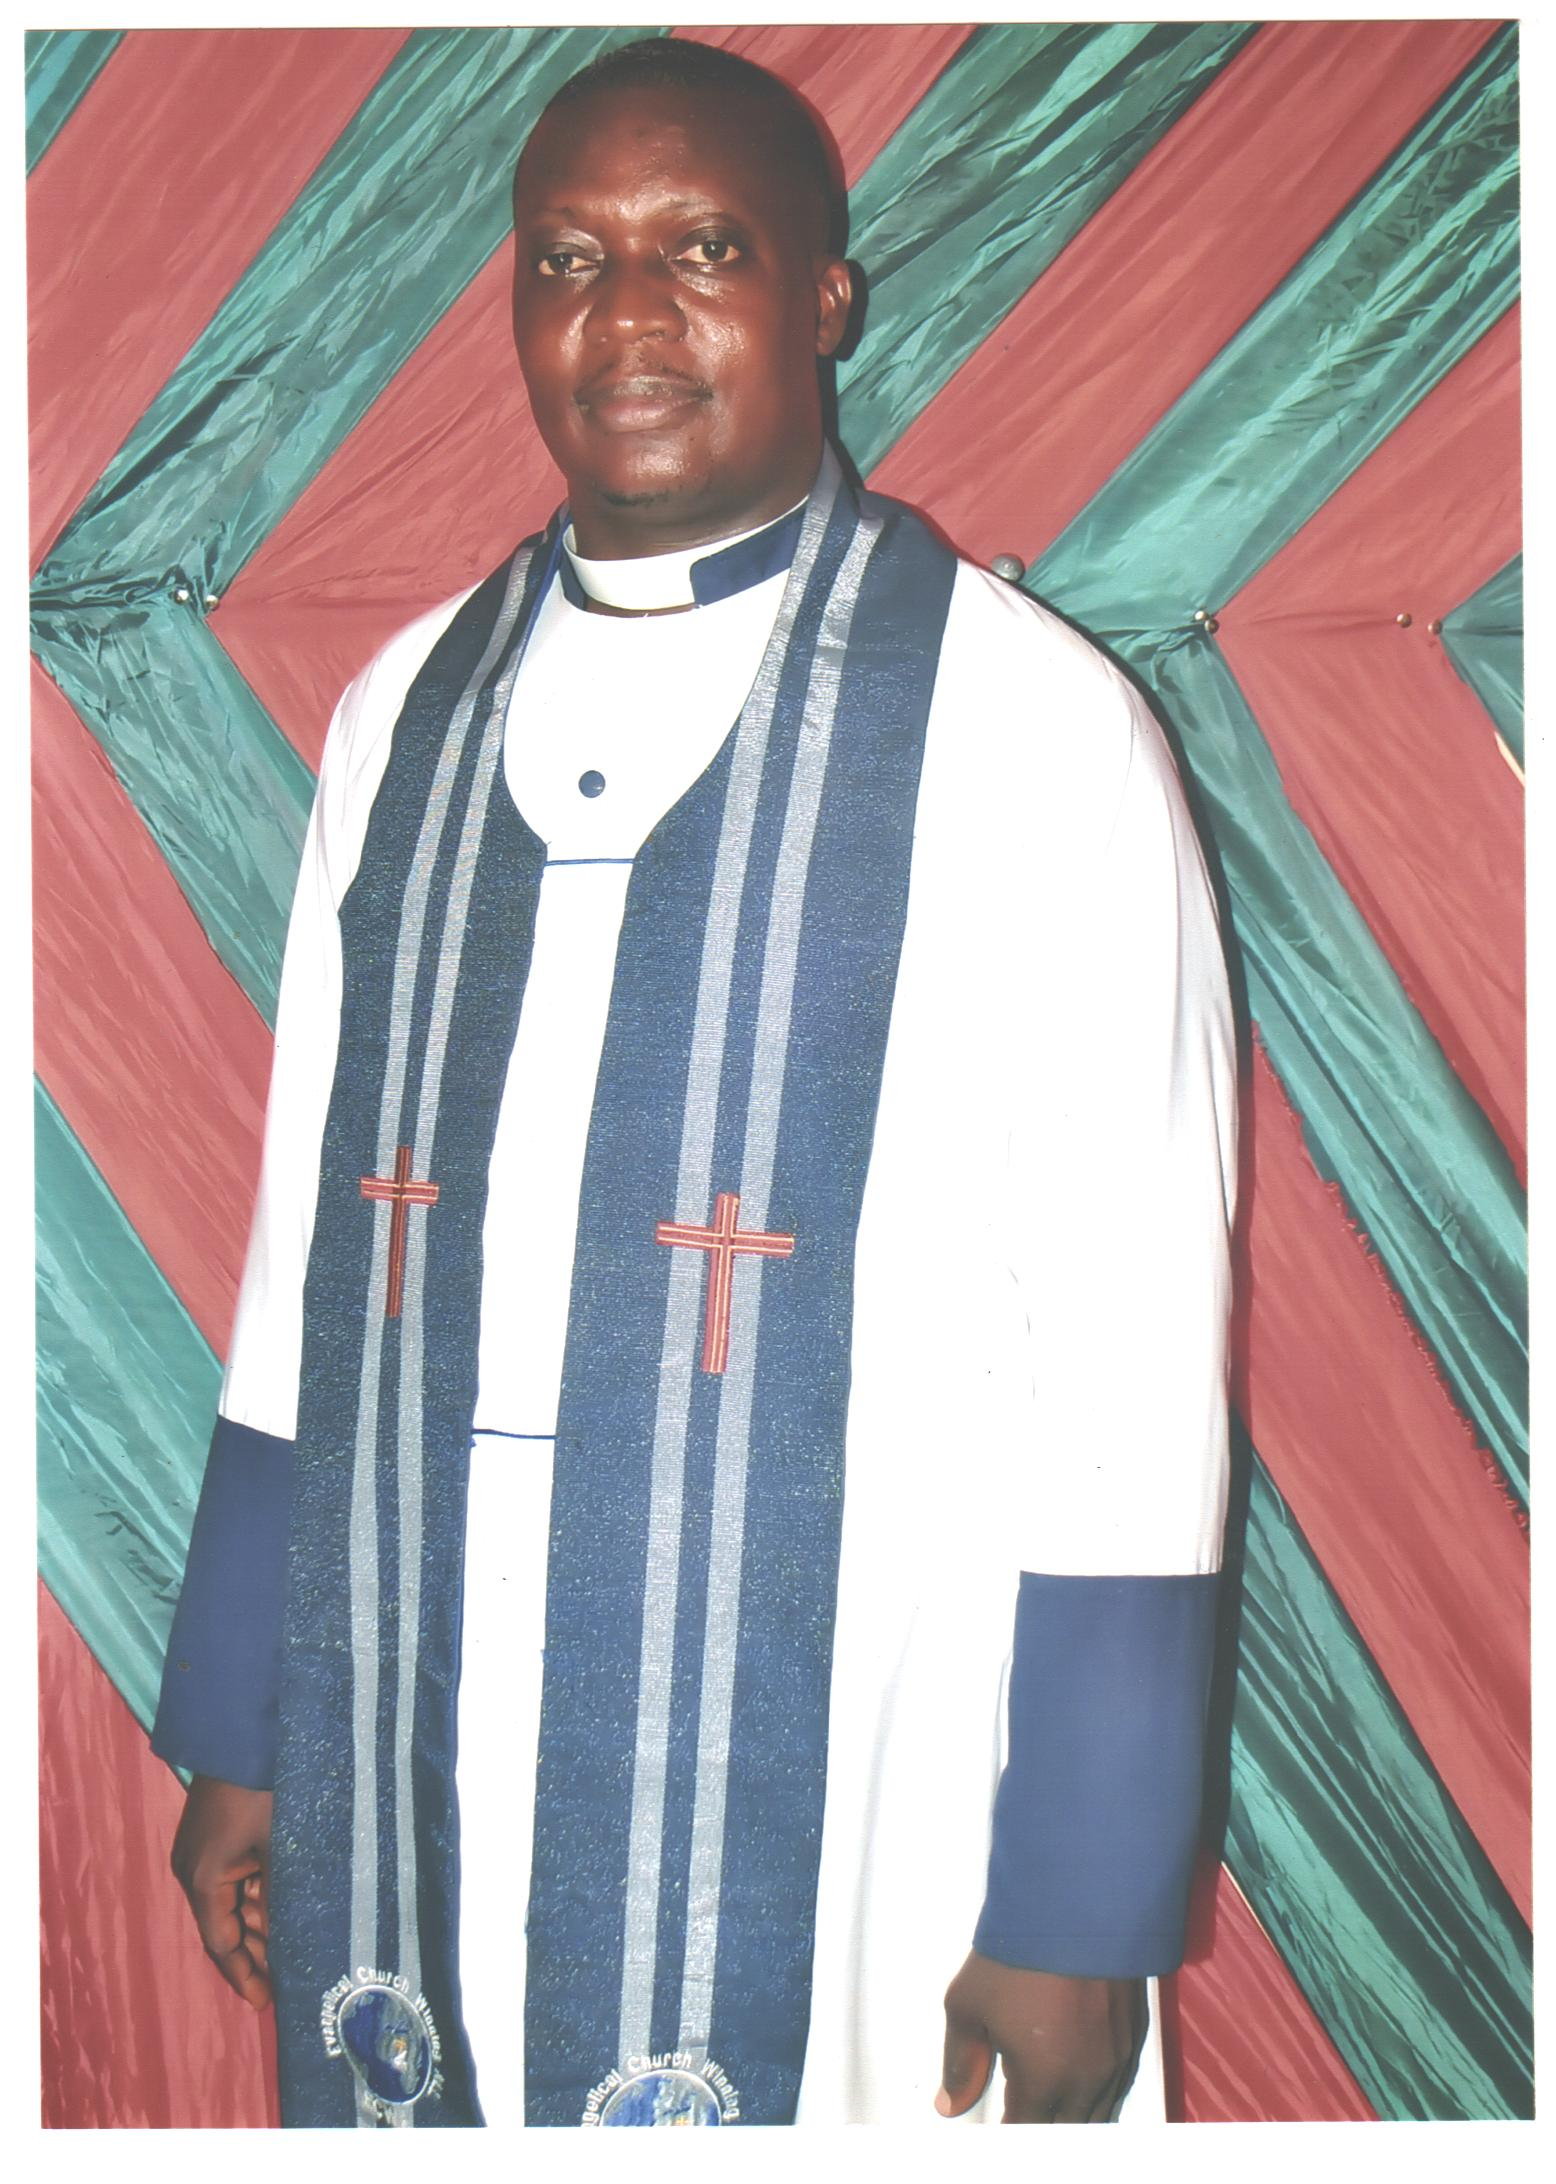 Abraham Ayo: a pastor from the great ECWA family